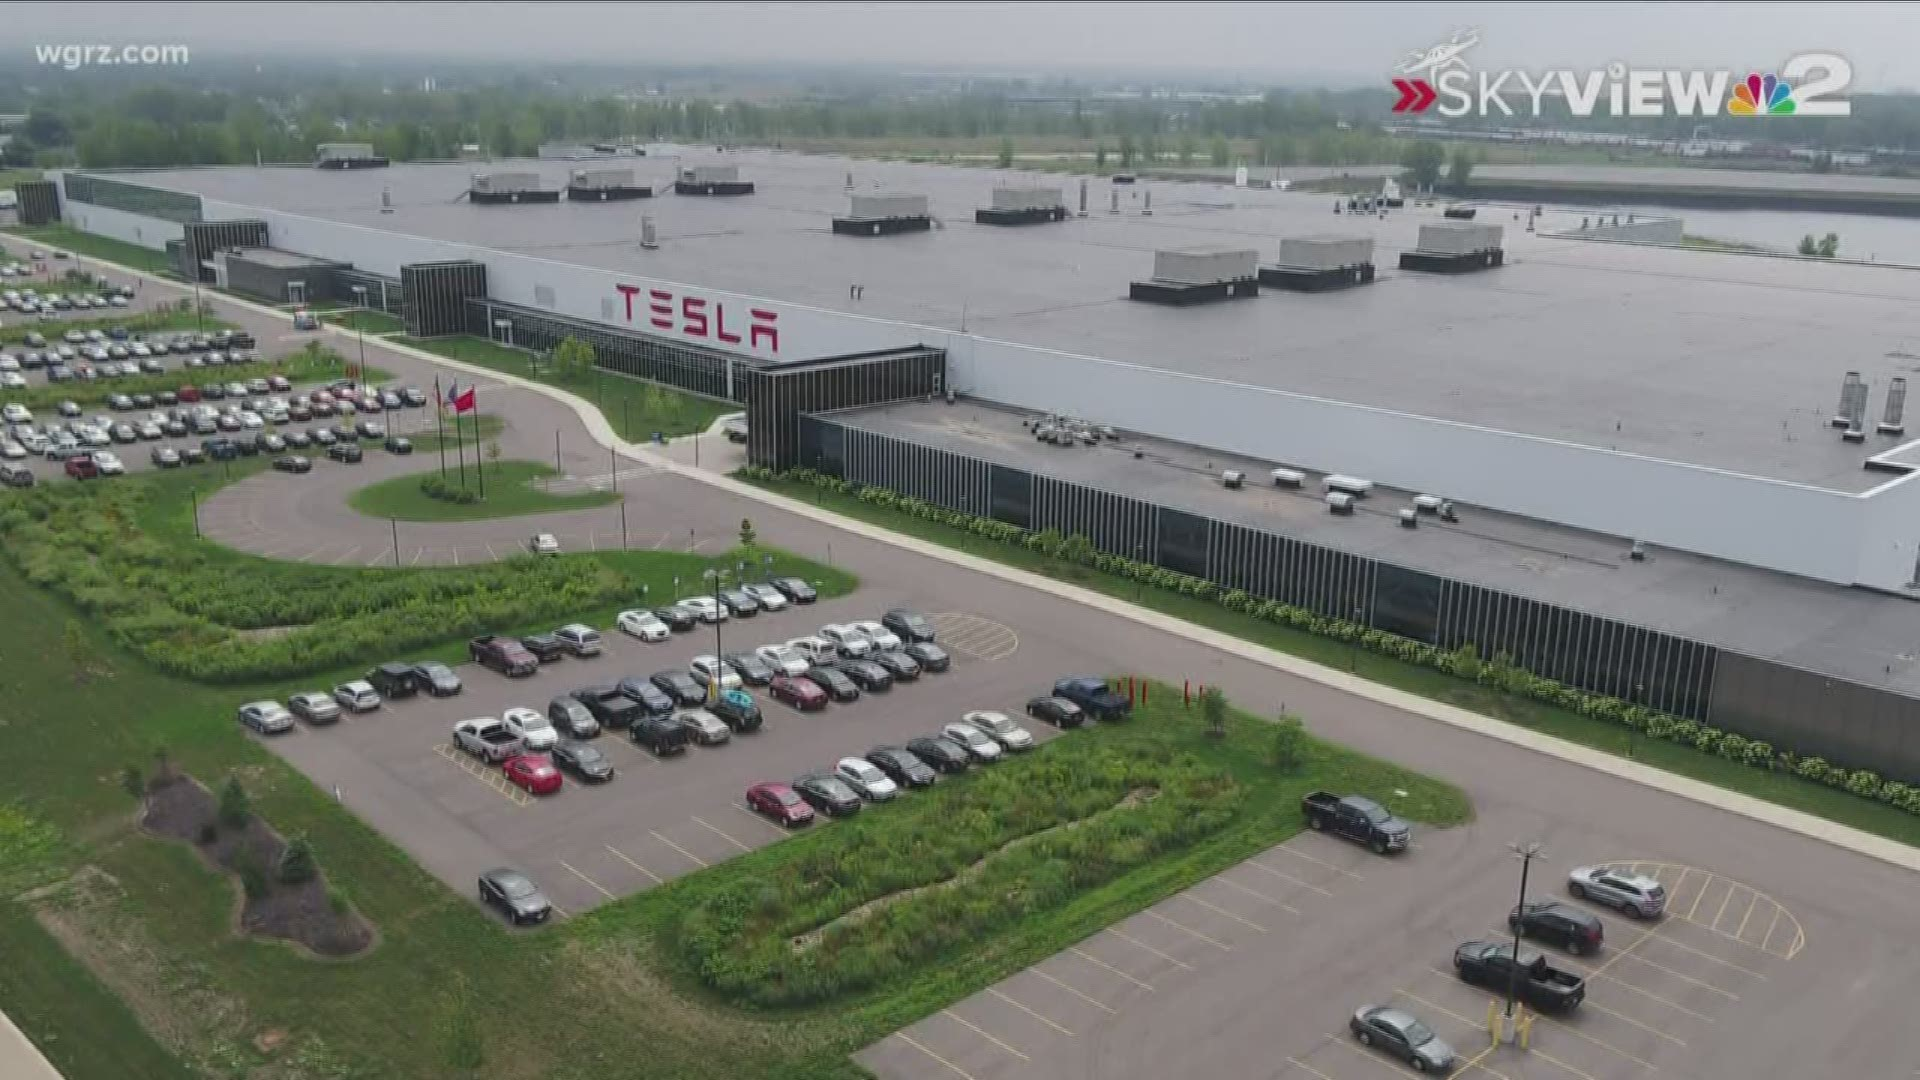 Tesla To Suspend Operations At South Buffalo Plant For Now Wgrz Com